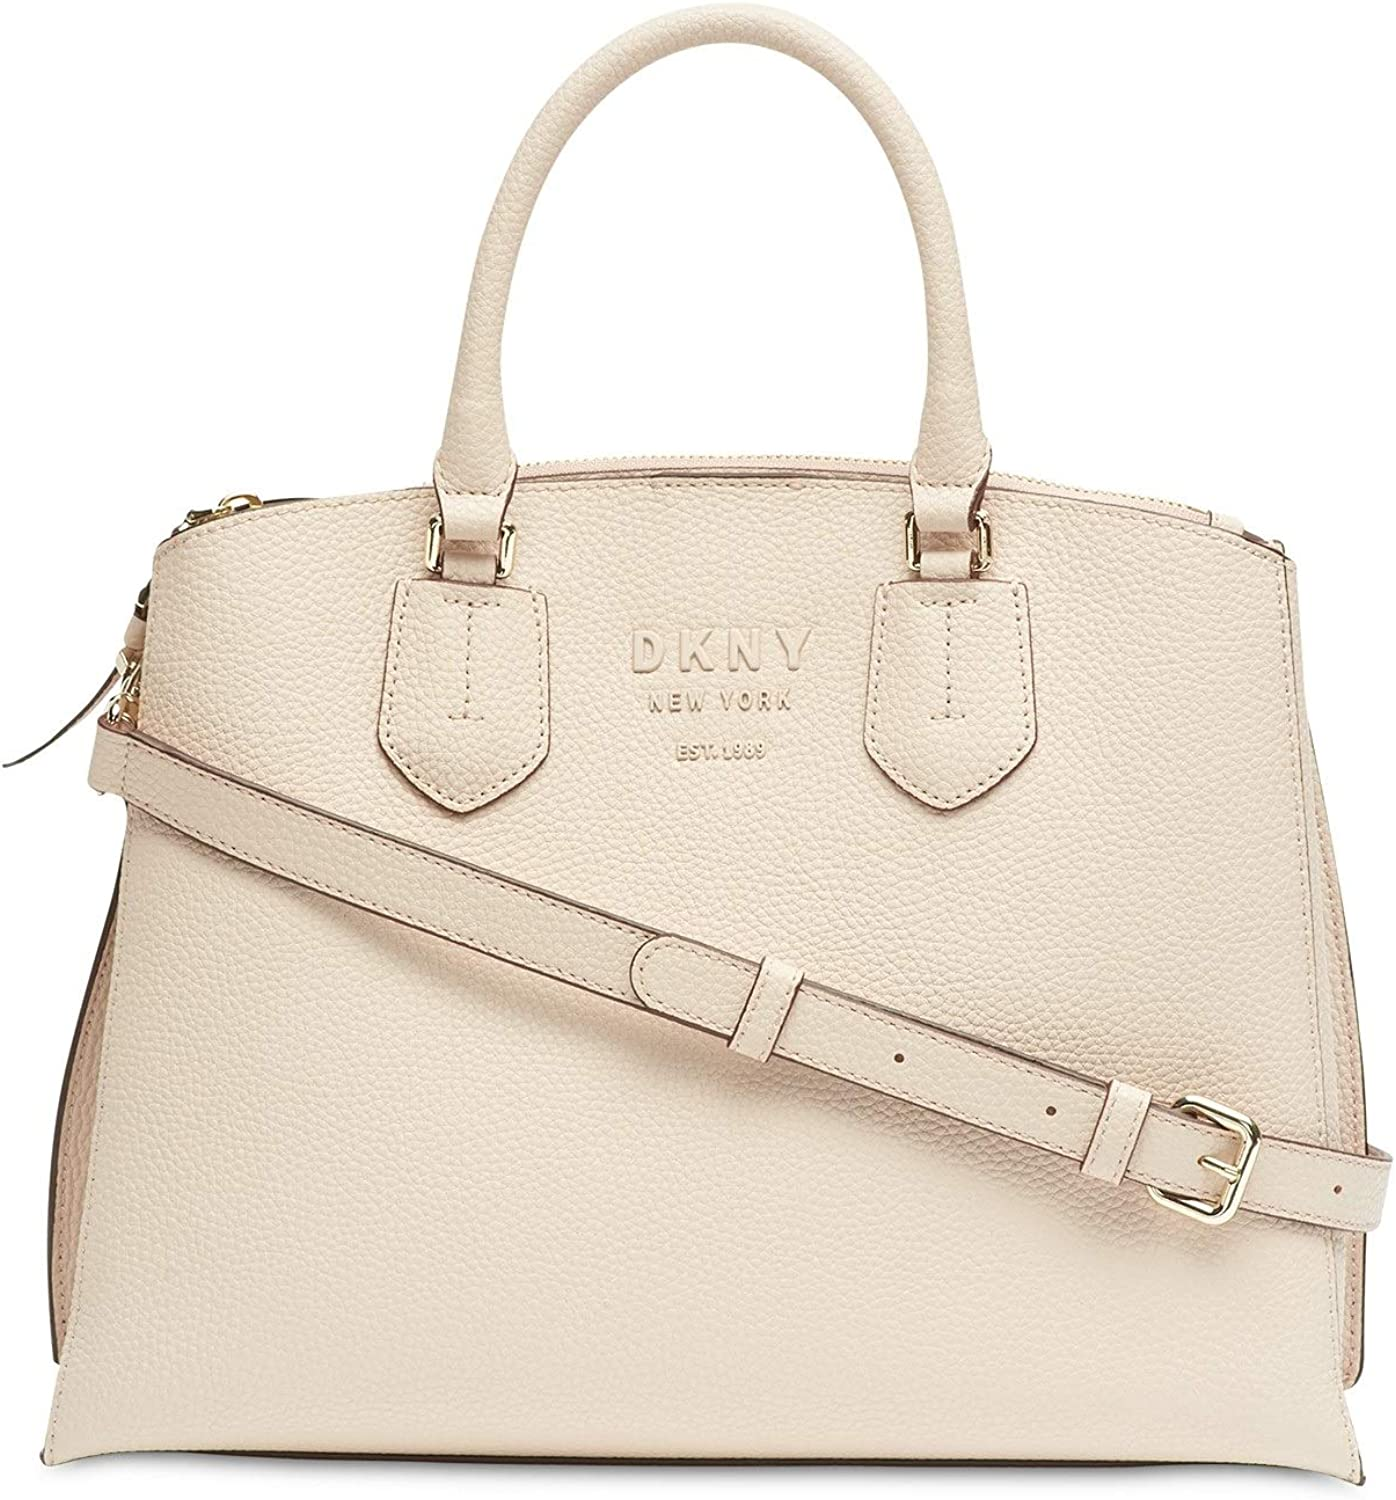 DKNY Sullivan Leather Triple Compartment Leather Pale Pink Women/'s Handbag New!